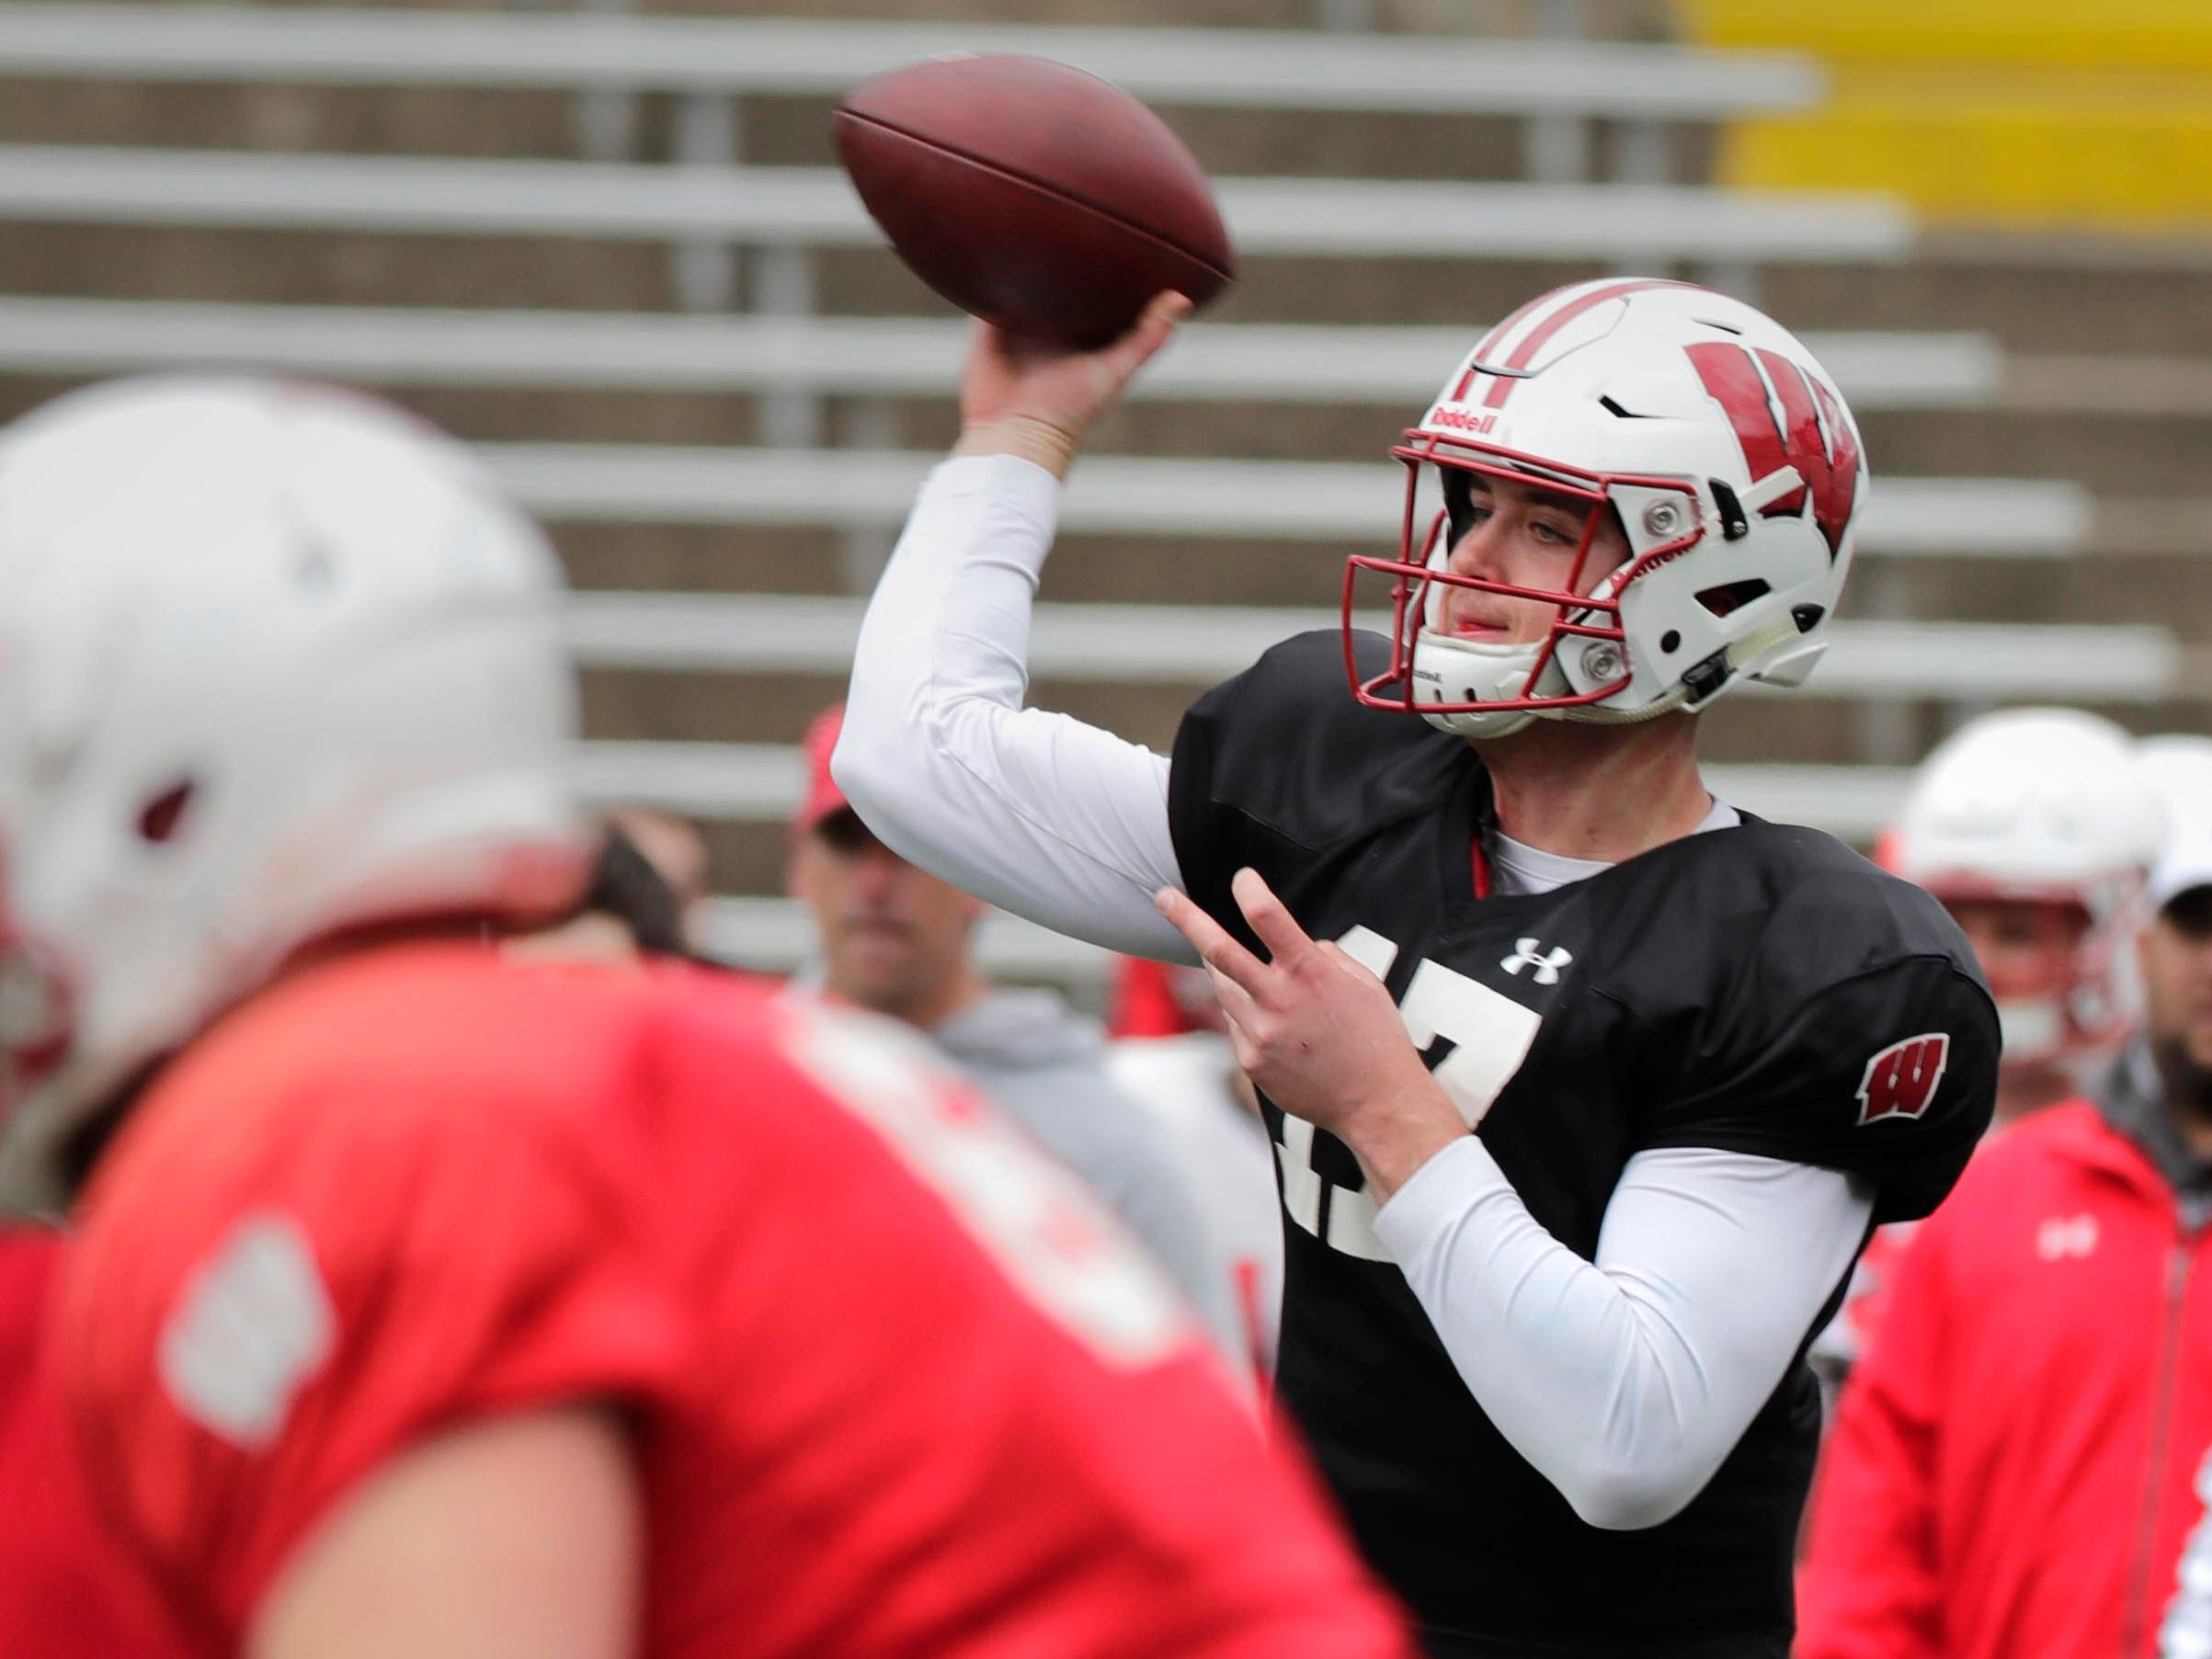 Quarterback Jack Coan gets ready to unleash a pass during UW's spring practice Saturday at Camp Randall Stadium.